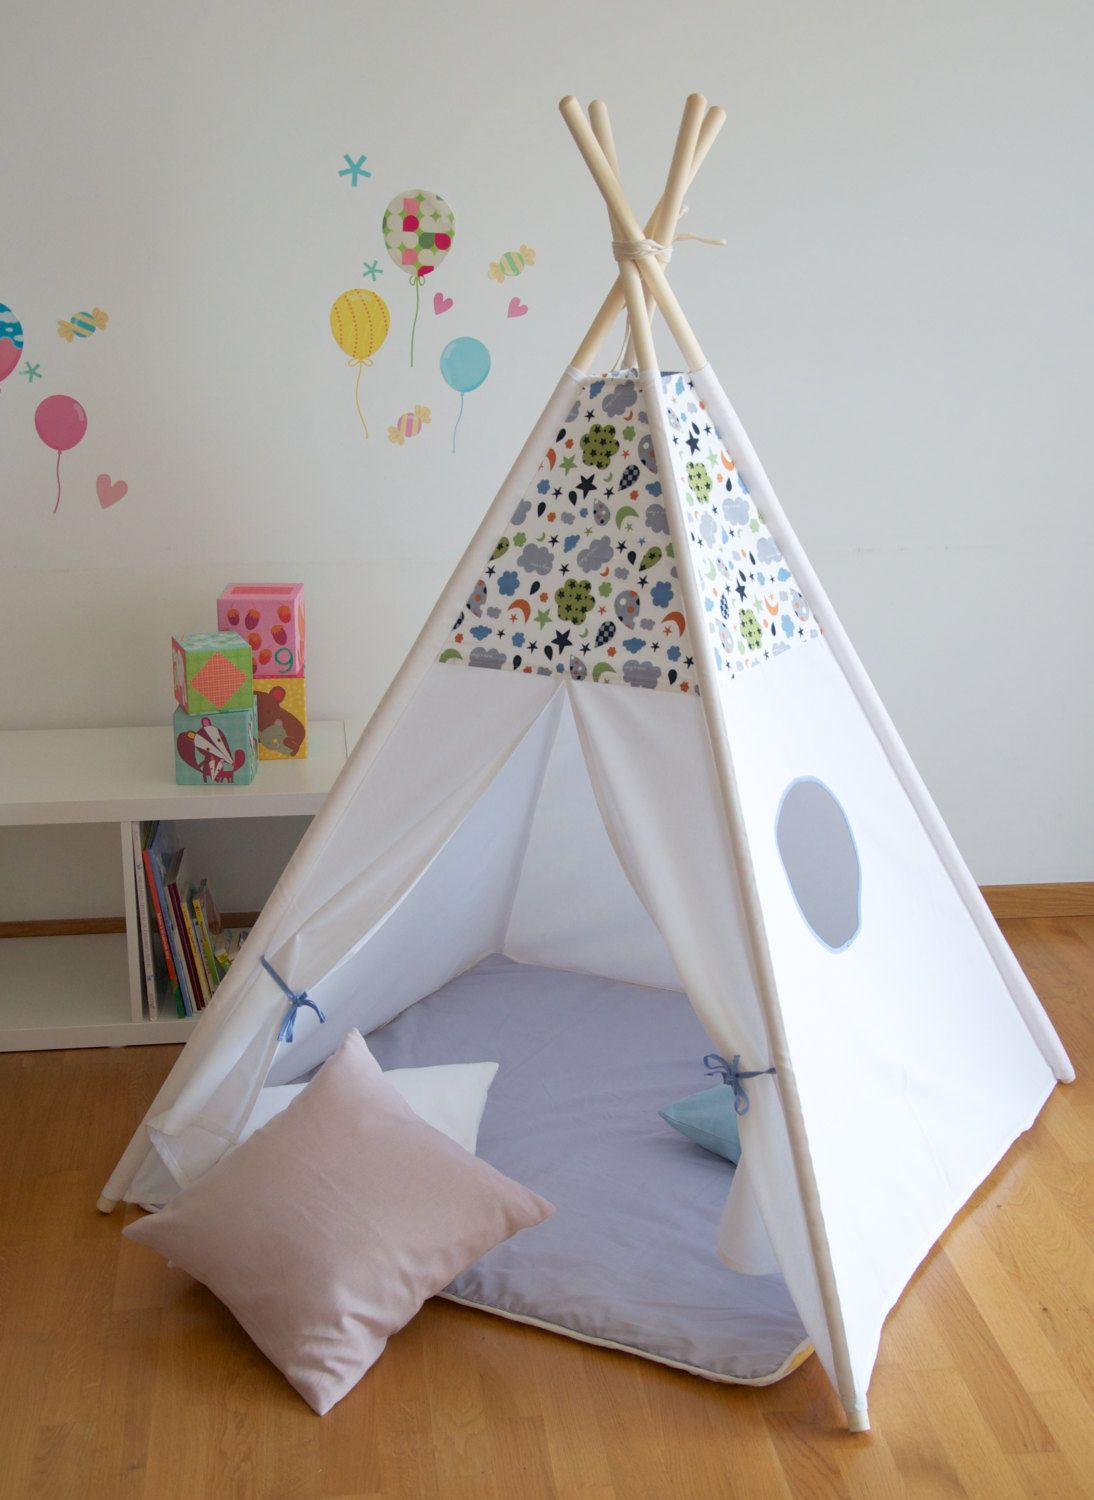 Grey clouds and stars kids teepee play tent with a padded floor mat by  WigiWama on